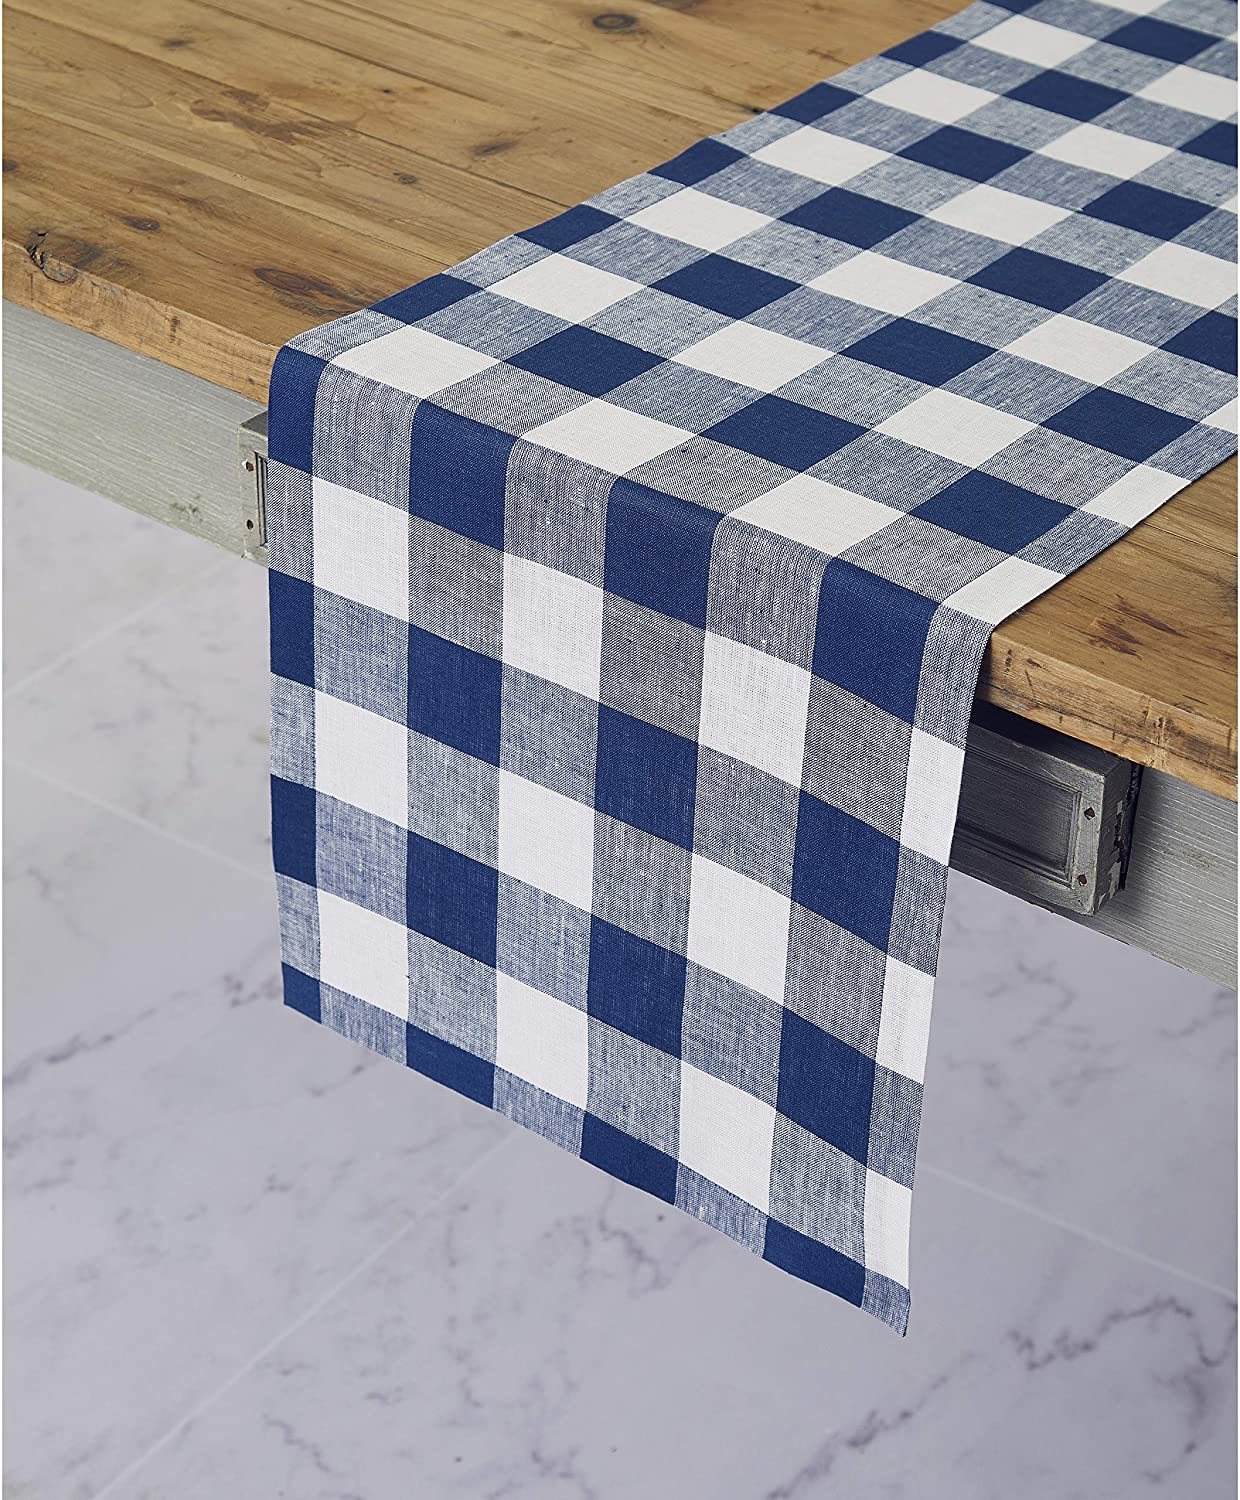 Solino Home 100% Pure Linen Buffalo Check Table Runner – 14 x 72 Inch Blue & White Checks Table Runner Natural Fabric Handcrafted from European Flax